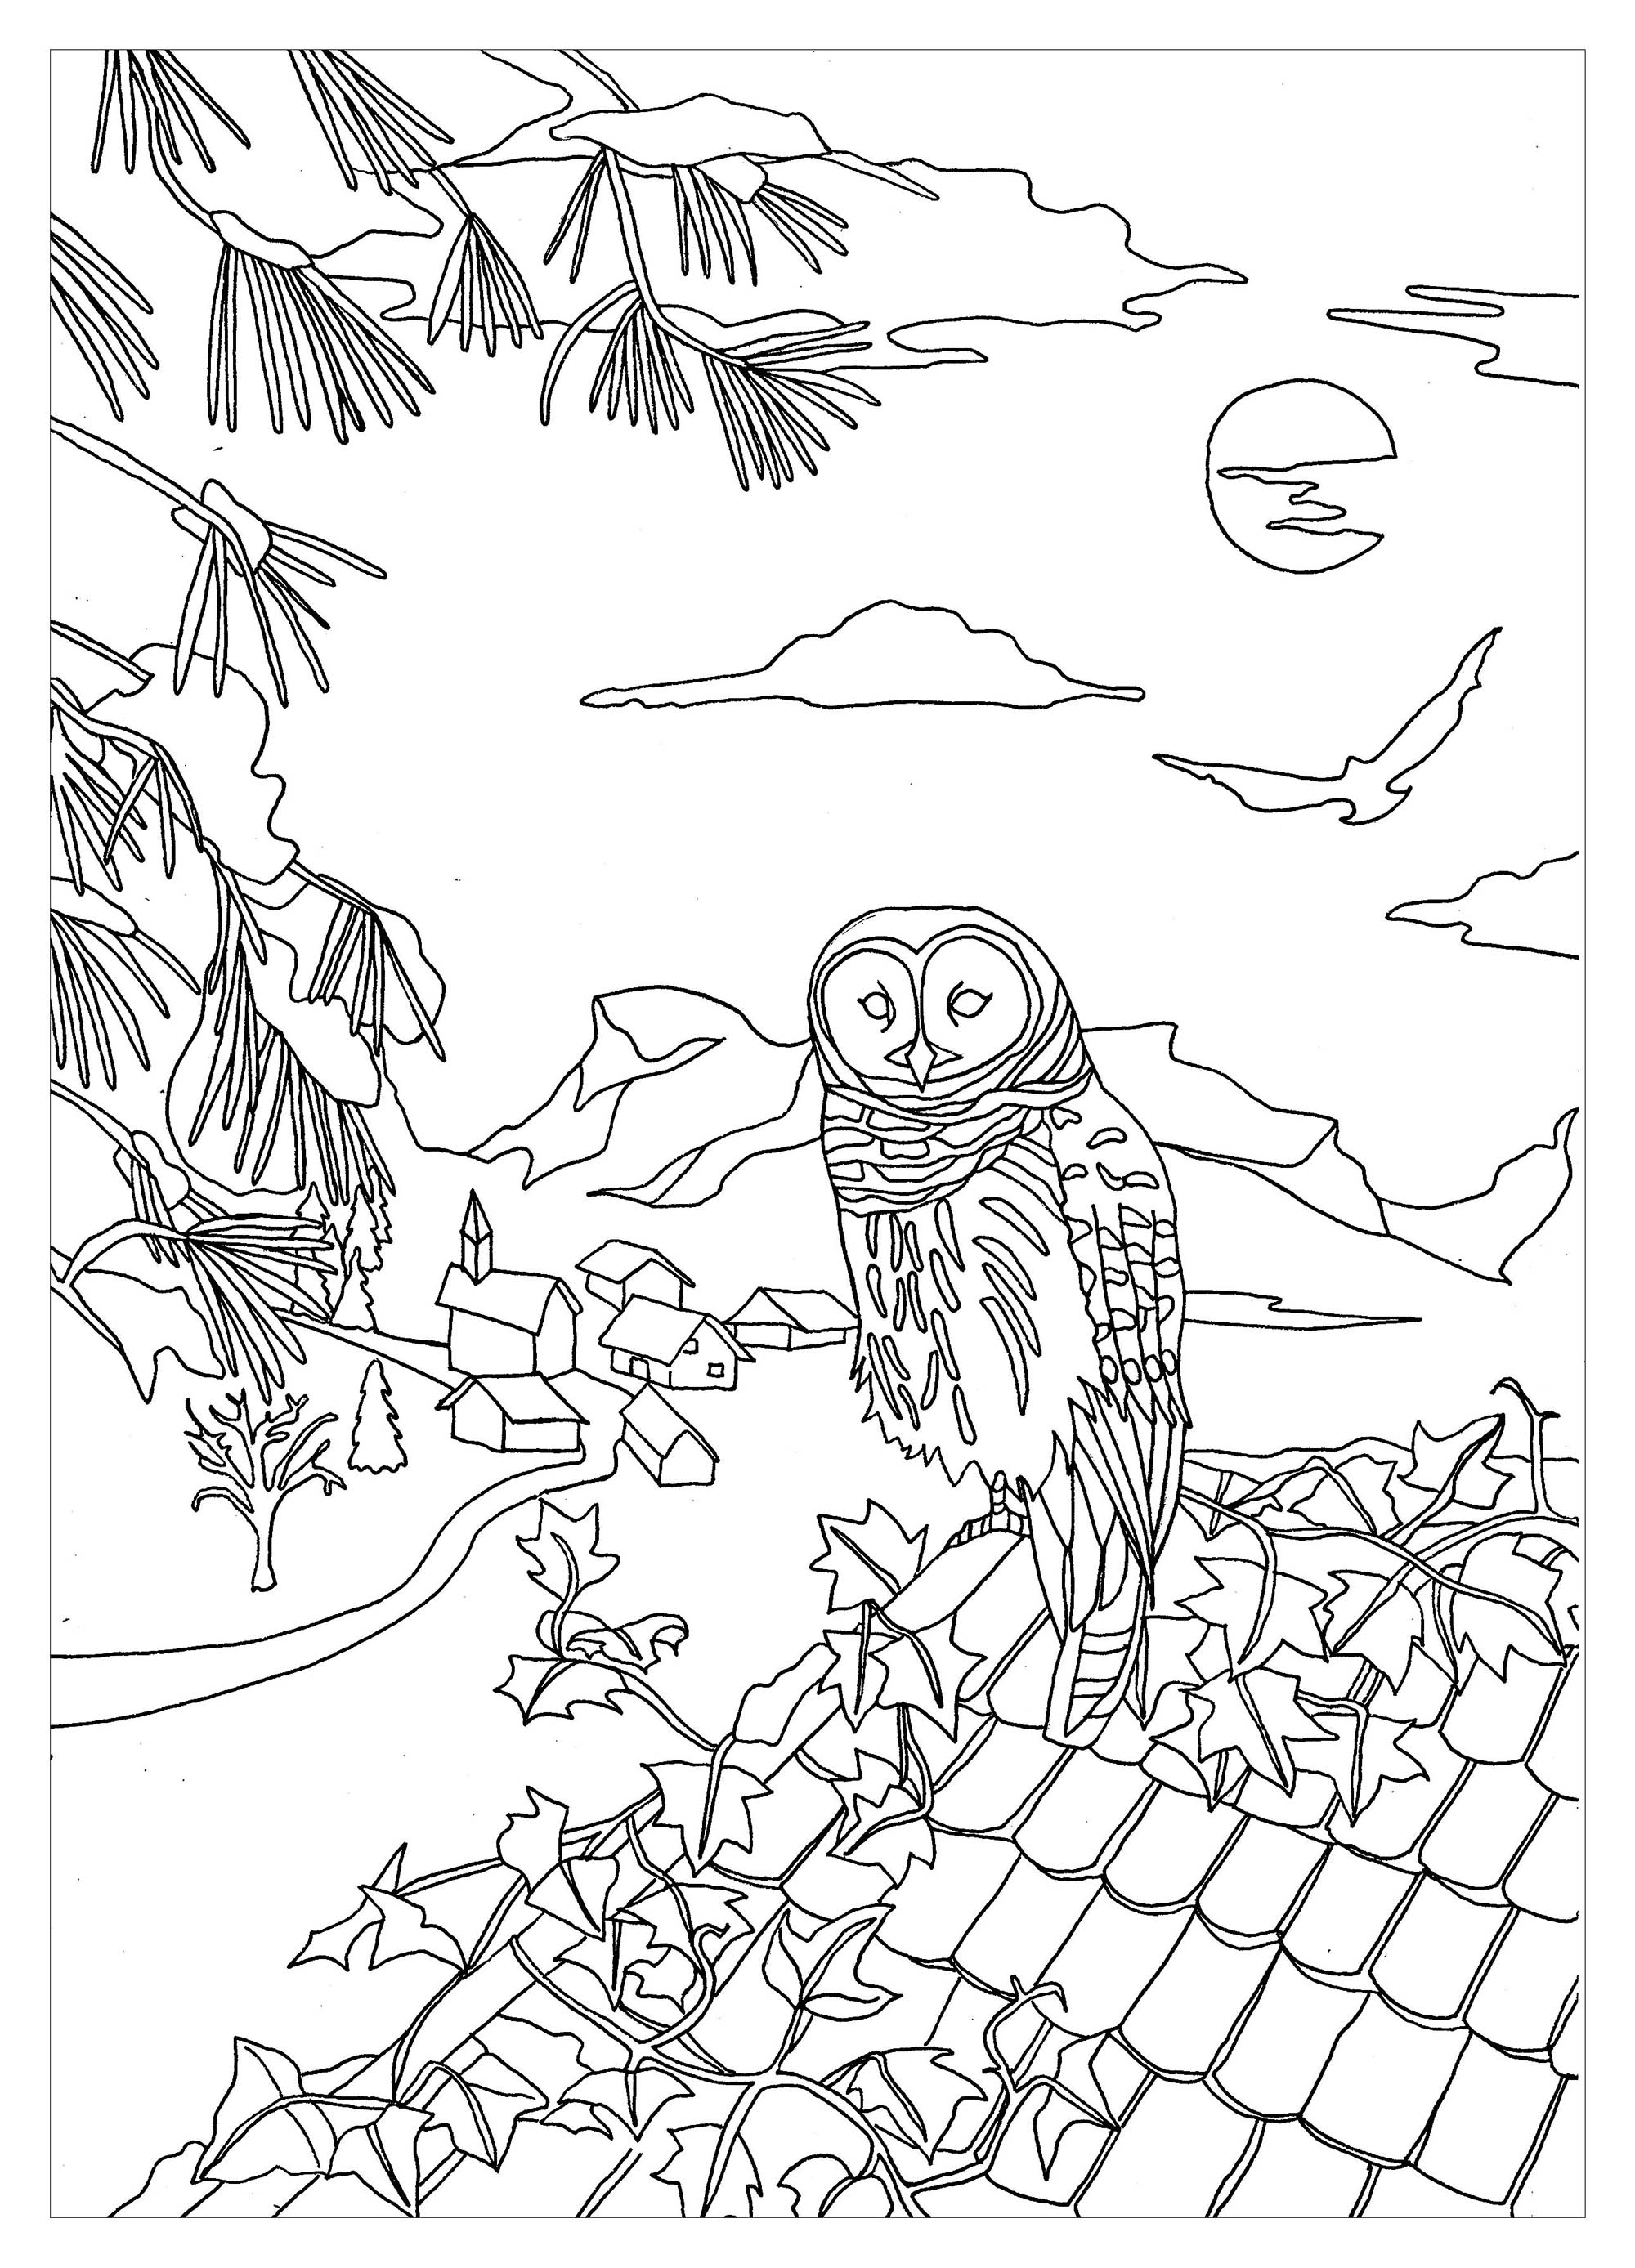 Owls To Print Owls Kids Coloring Pages